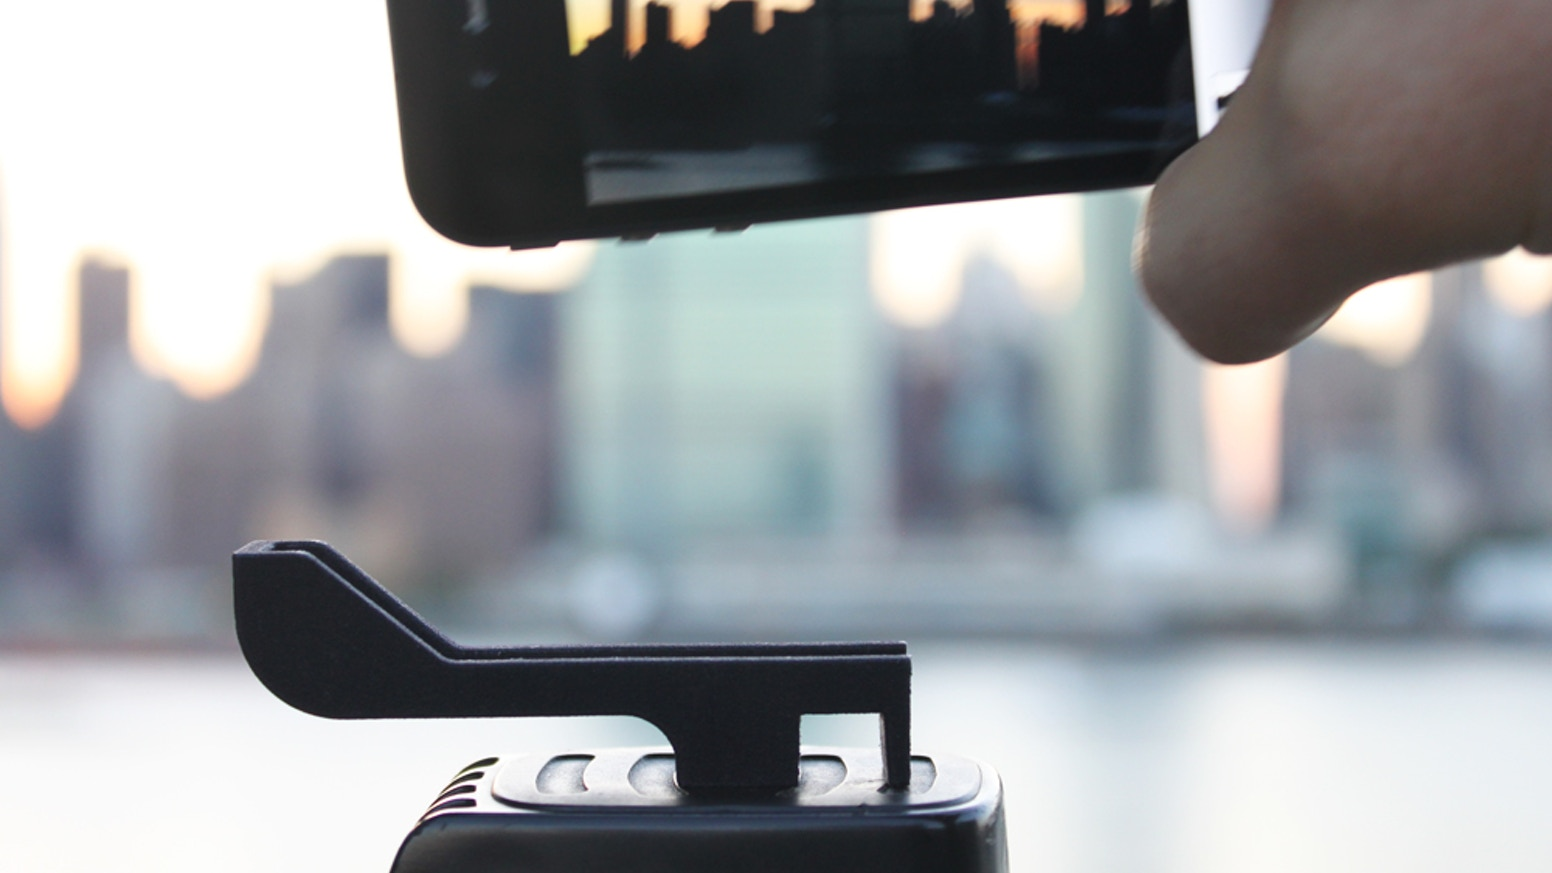 Glif is a simple accessory with two primary functions: mounting your smartphone to a standard tripod, and acting as a kickstand to prop it up.